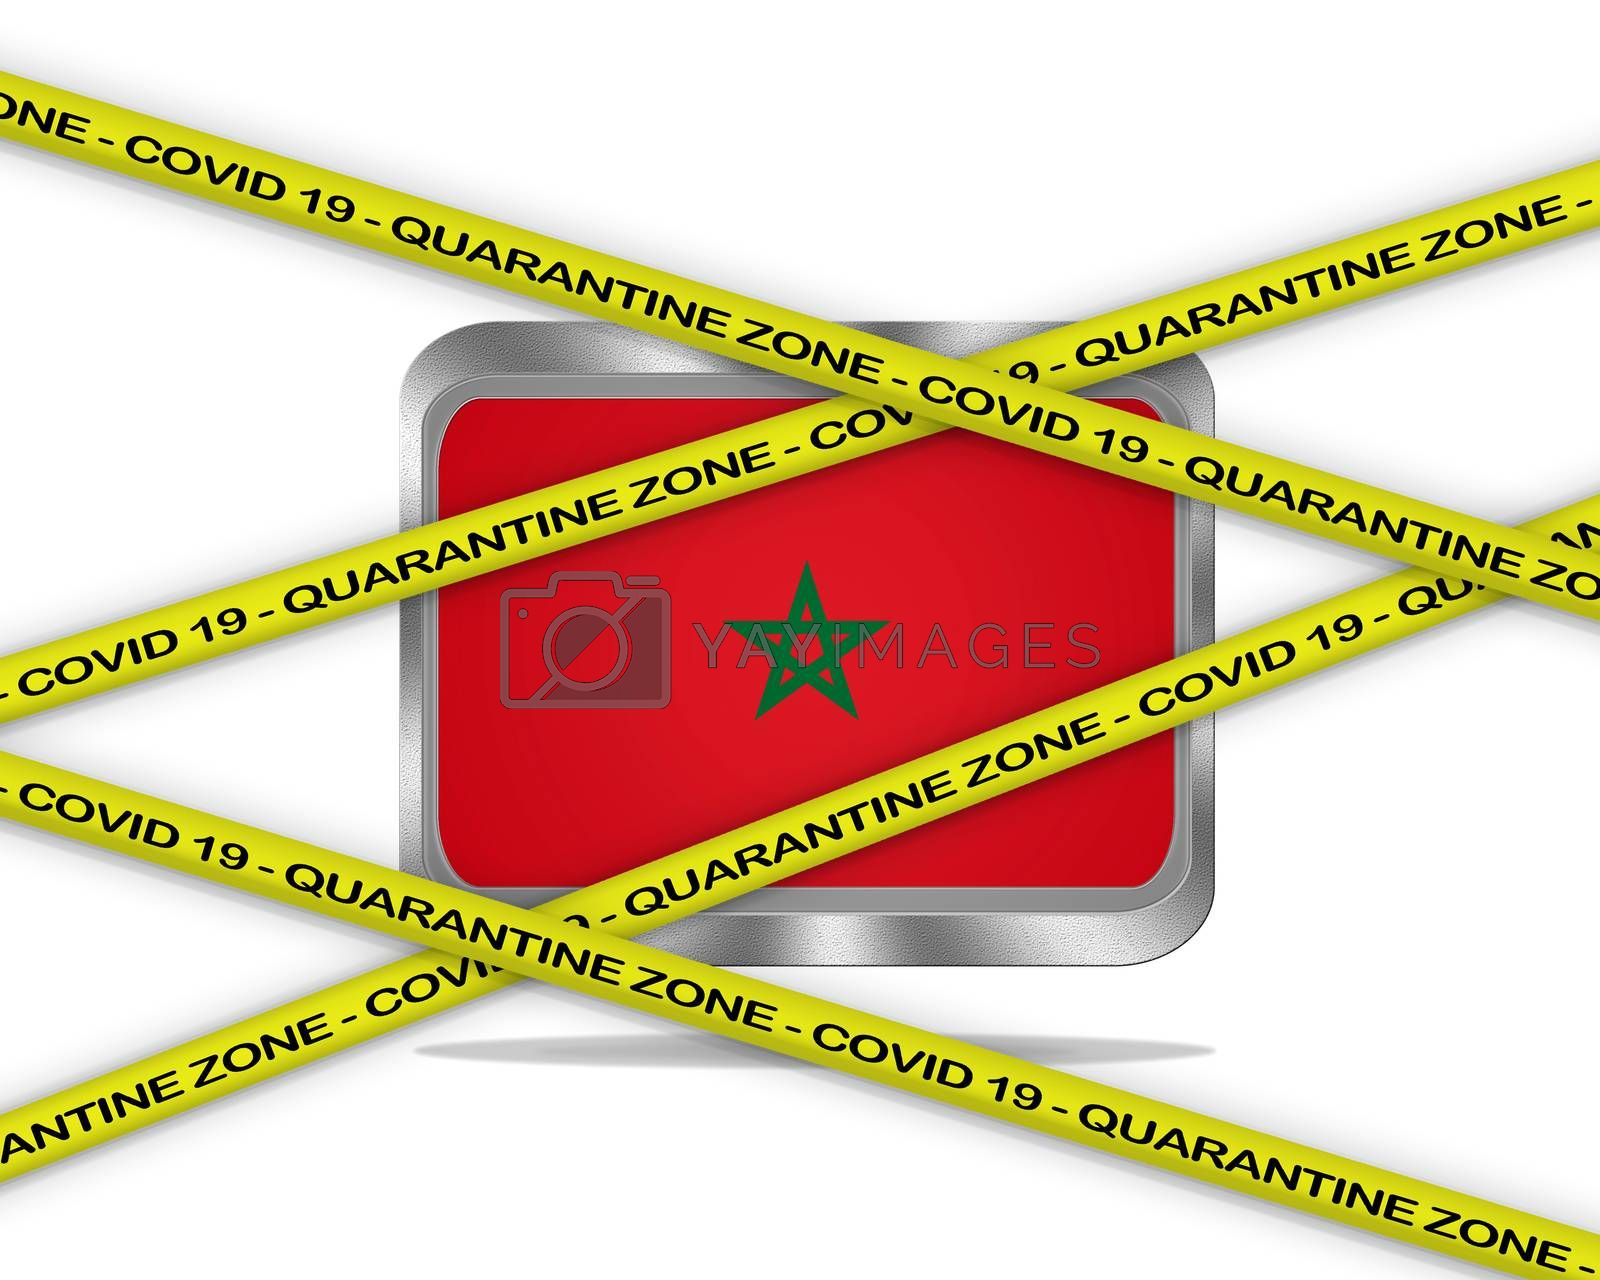 COVID-19 warning yellow ribbon written with: Quarantine zone Cover 19 on Morocco flag illustration. Coronavirus danger area, quarantined country.